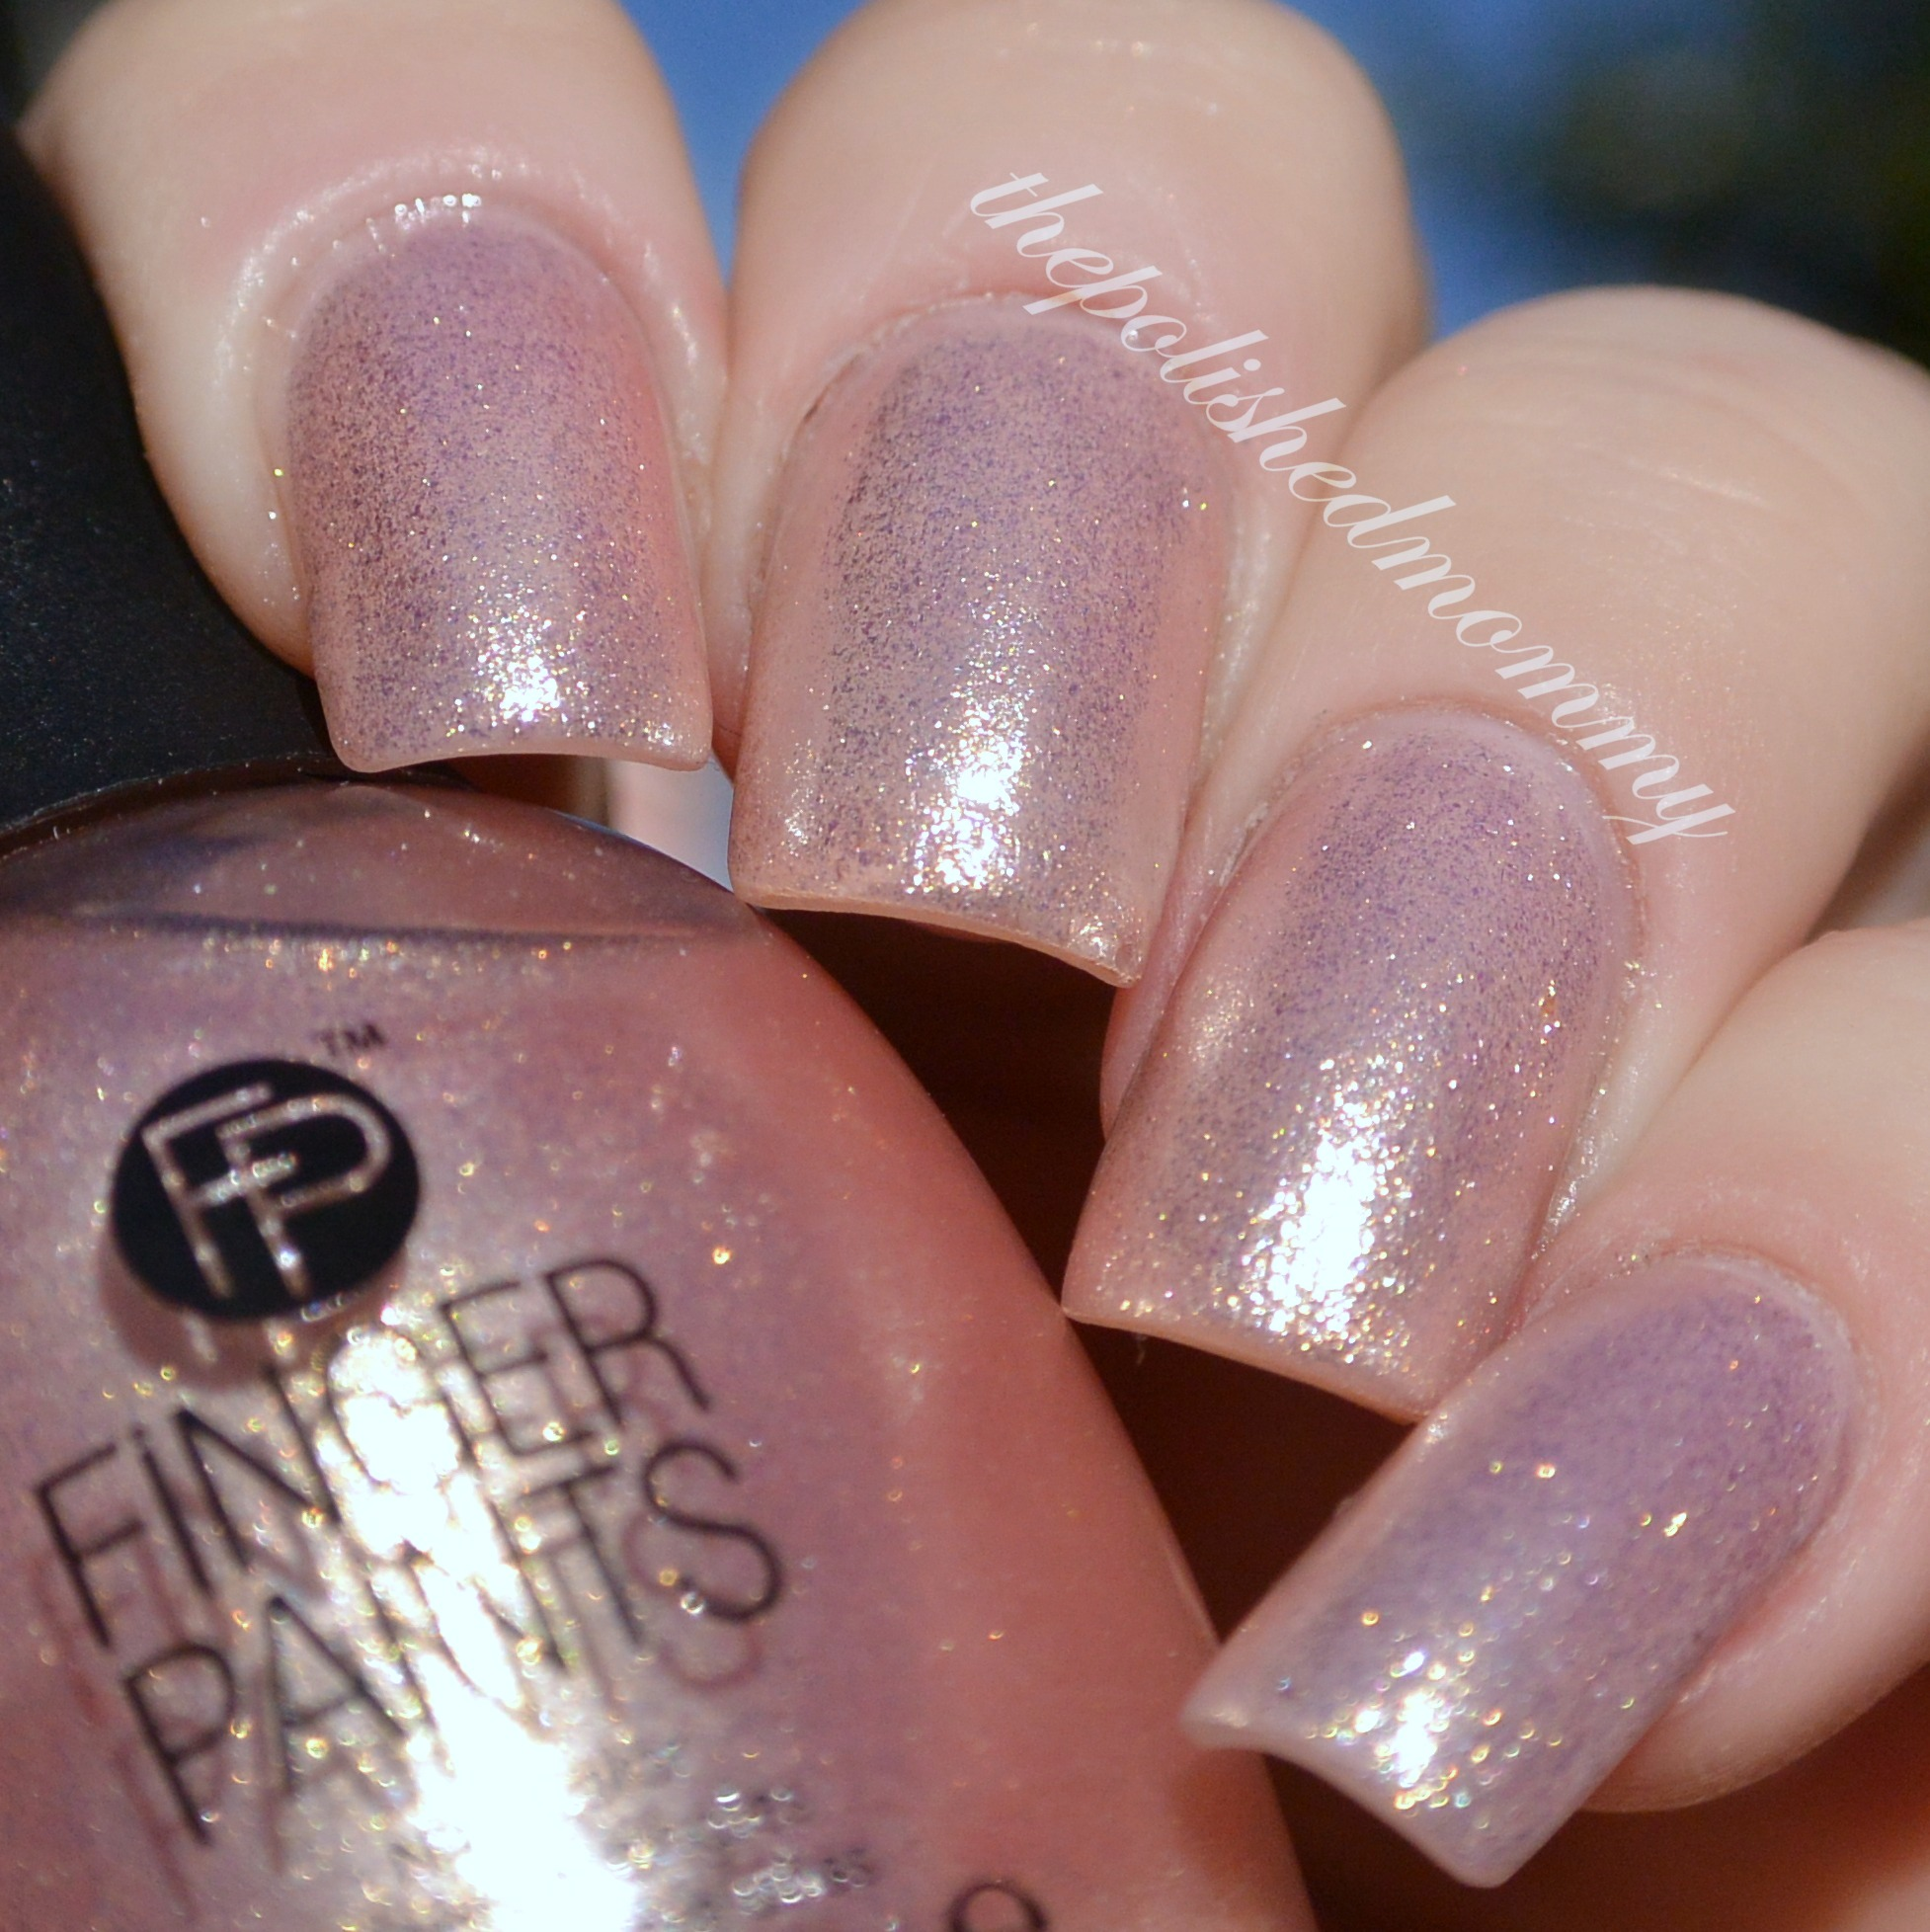 Finger Paint Nail Polish Colors - Absolute cycle